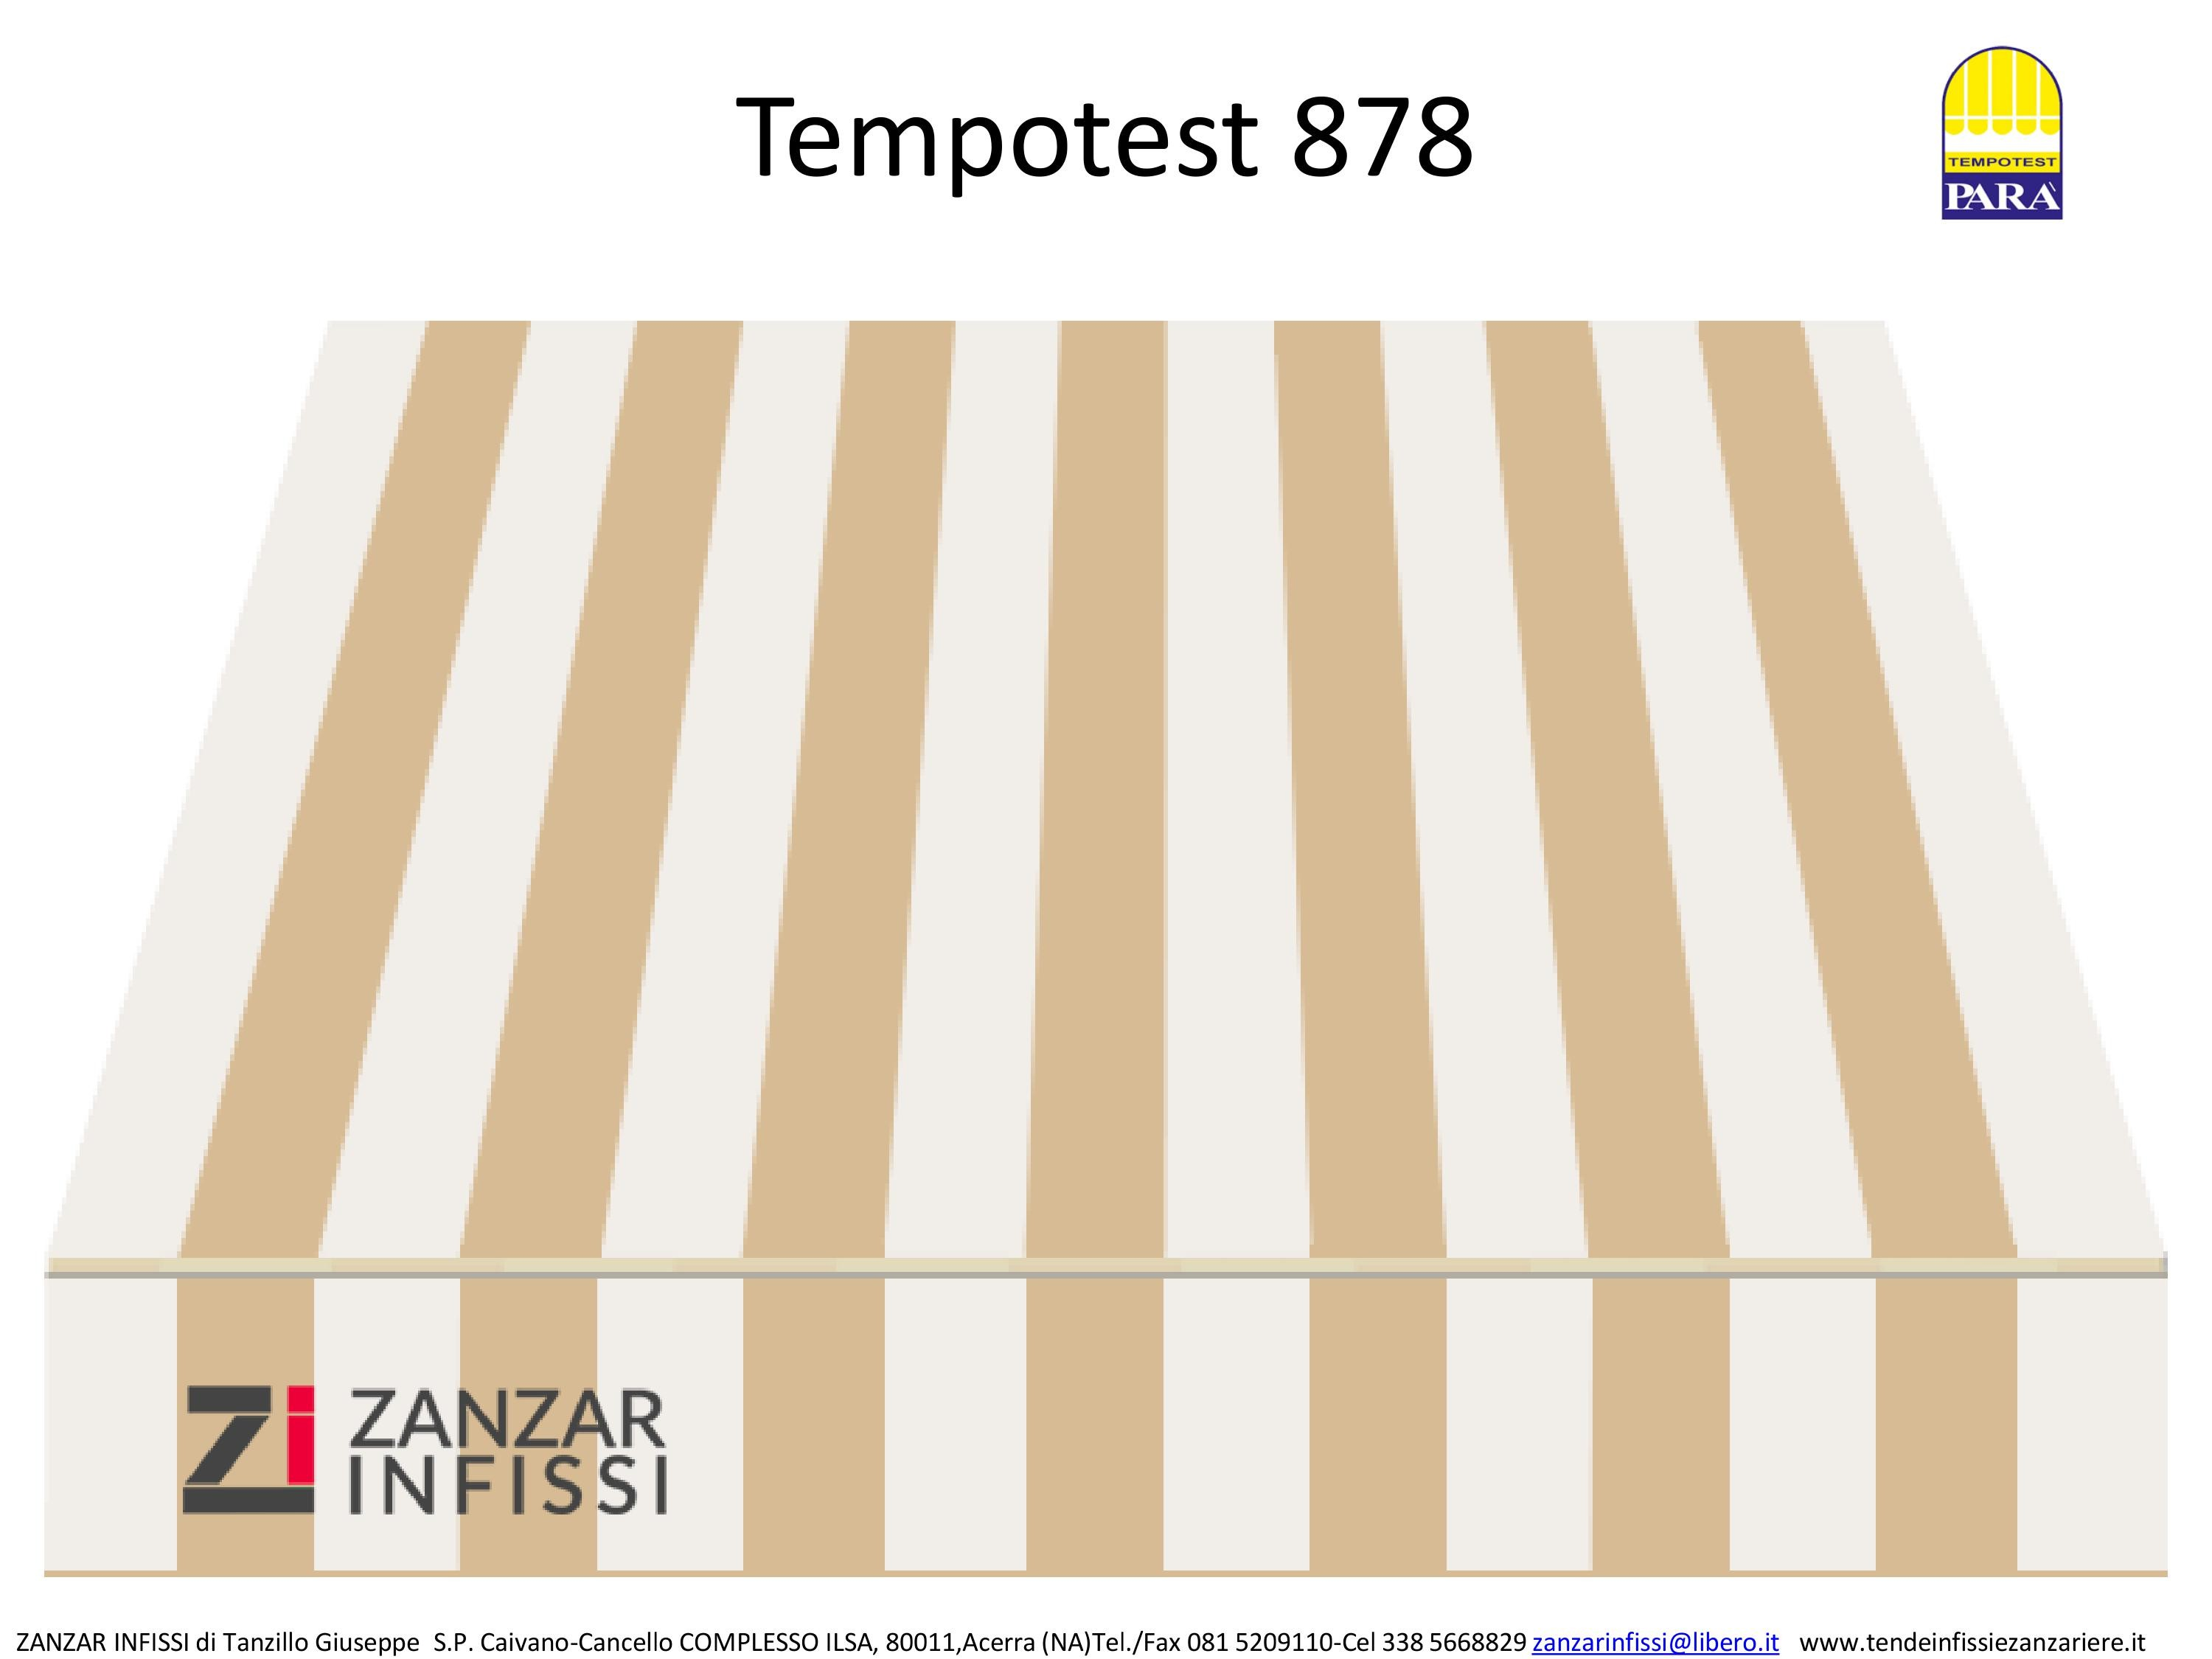 Tempotest 878